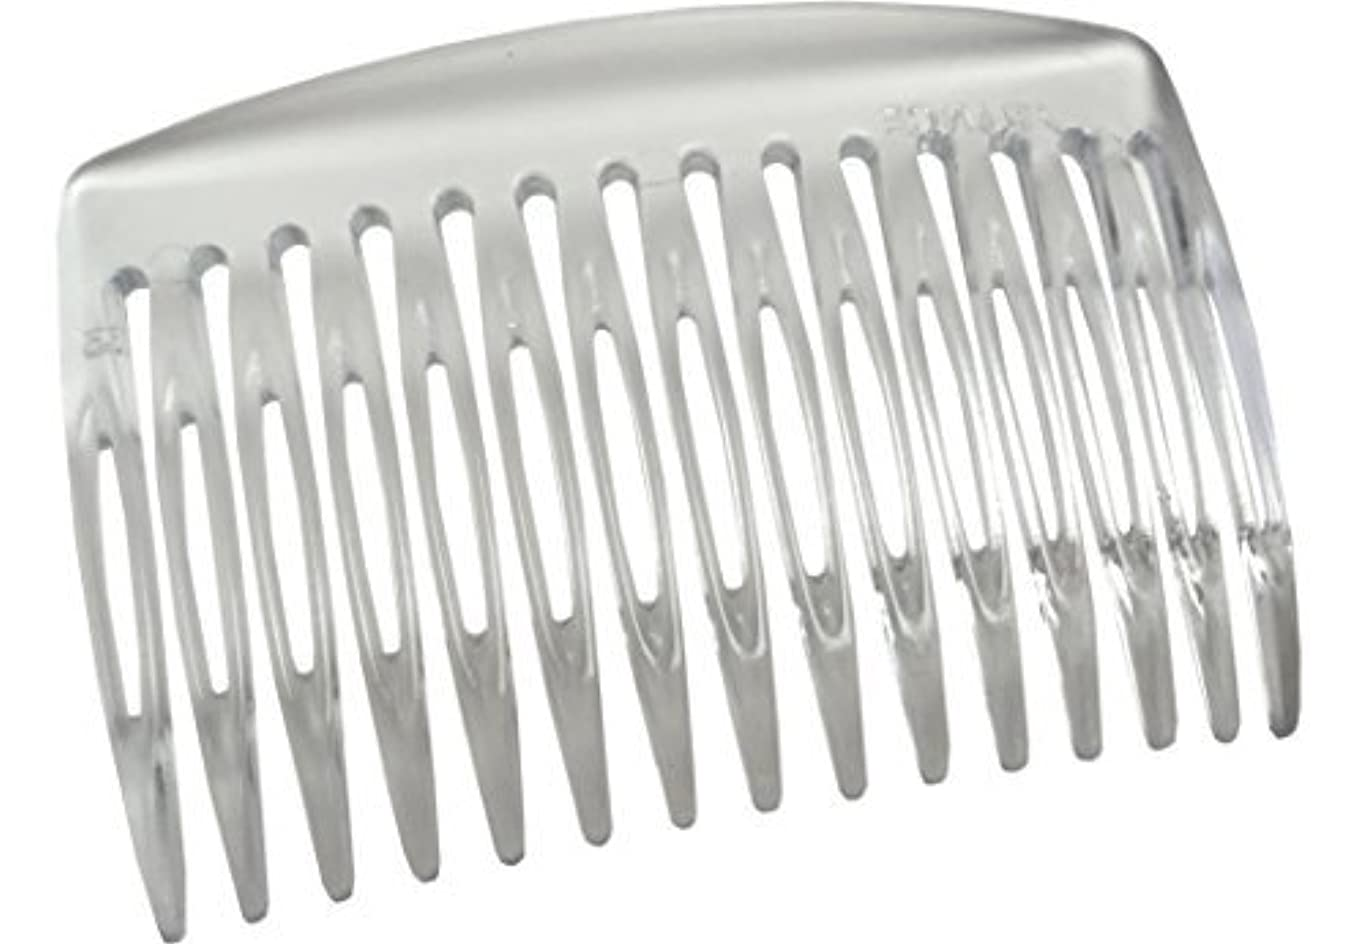 手数料噴火軽食Parcelona French Nice N Simple Clear 2 Pieces Cellulose Acetate Clear 7 Cm Side Hair Comb Combs [並行輸入品]